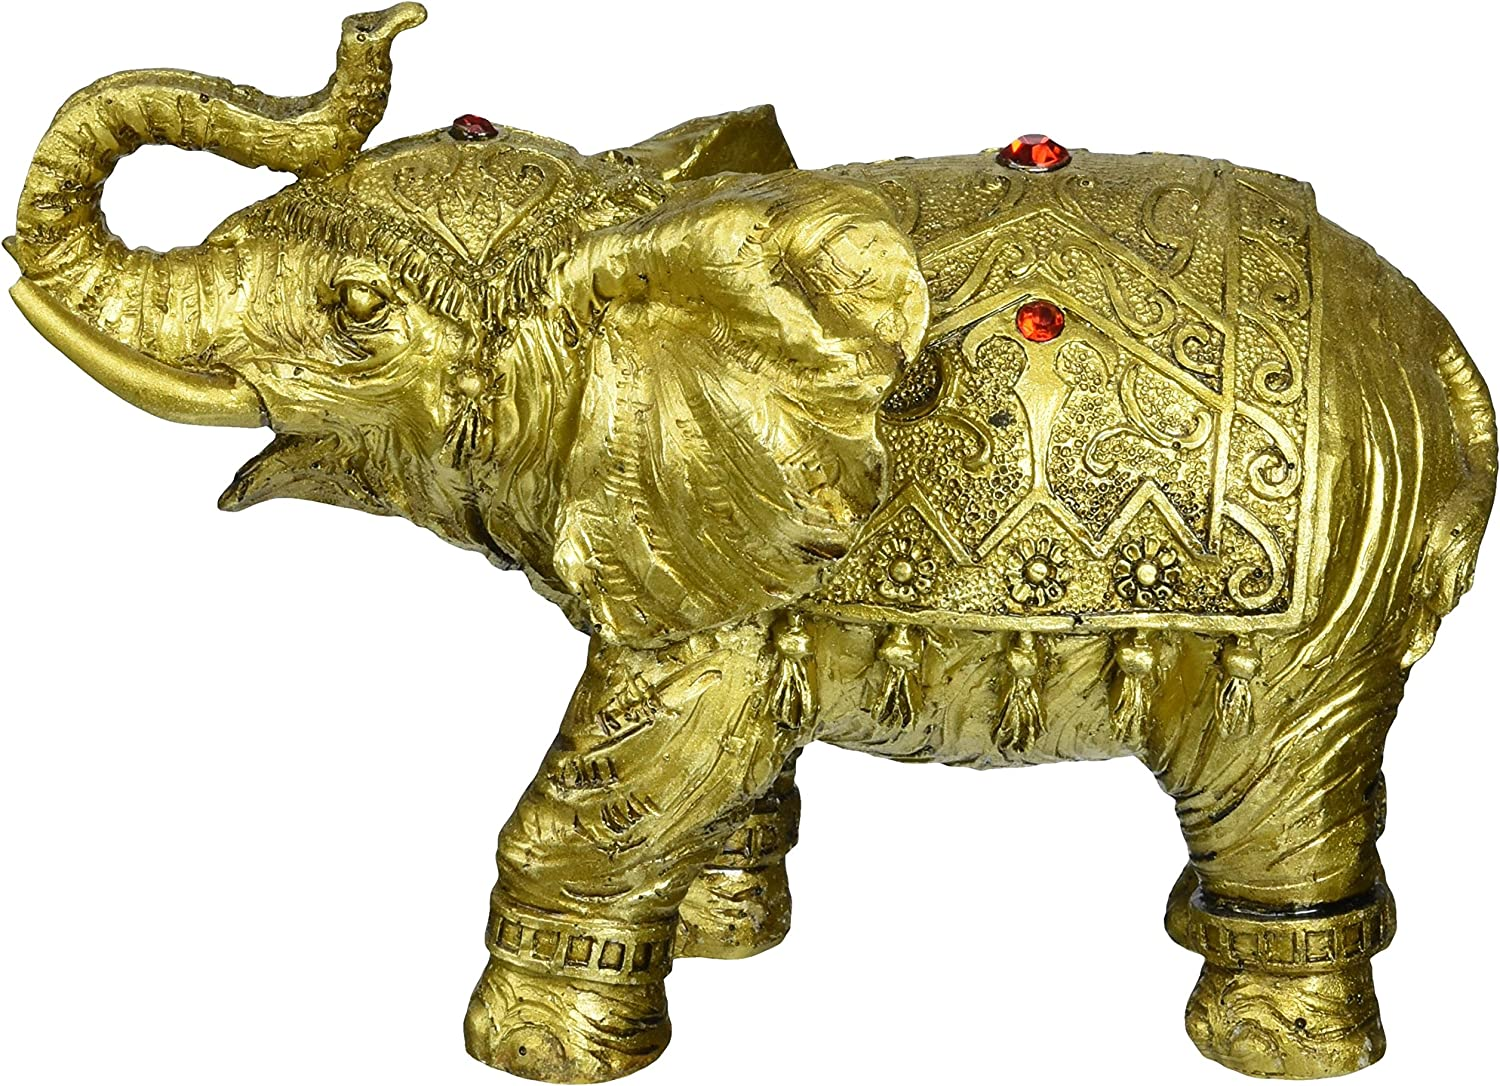 George S Home SS-G-88026 Chen Imports Thai Elephant Buddha Buddhist Collectible Figurine StealStreet